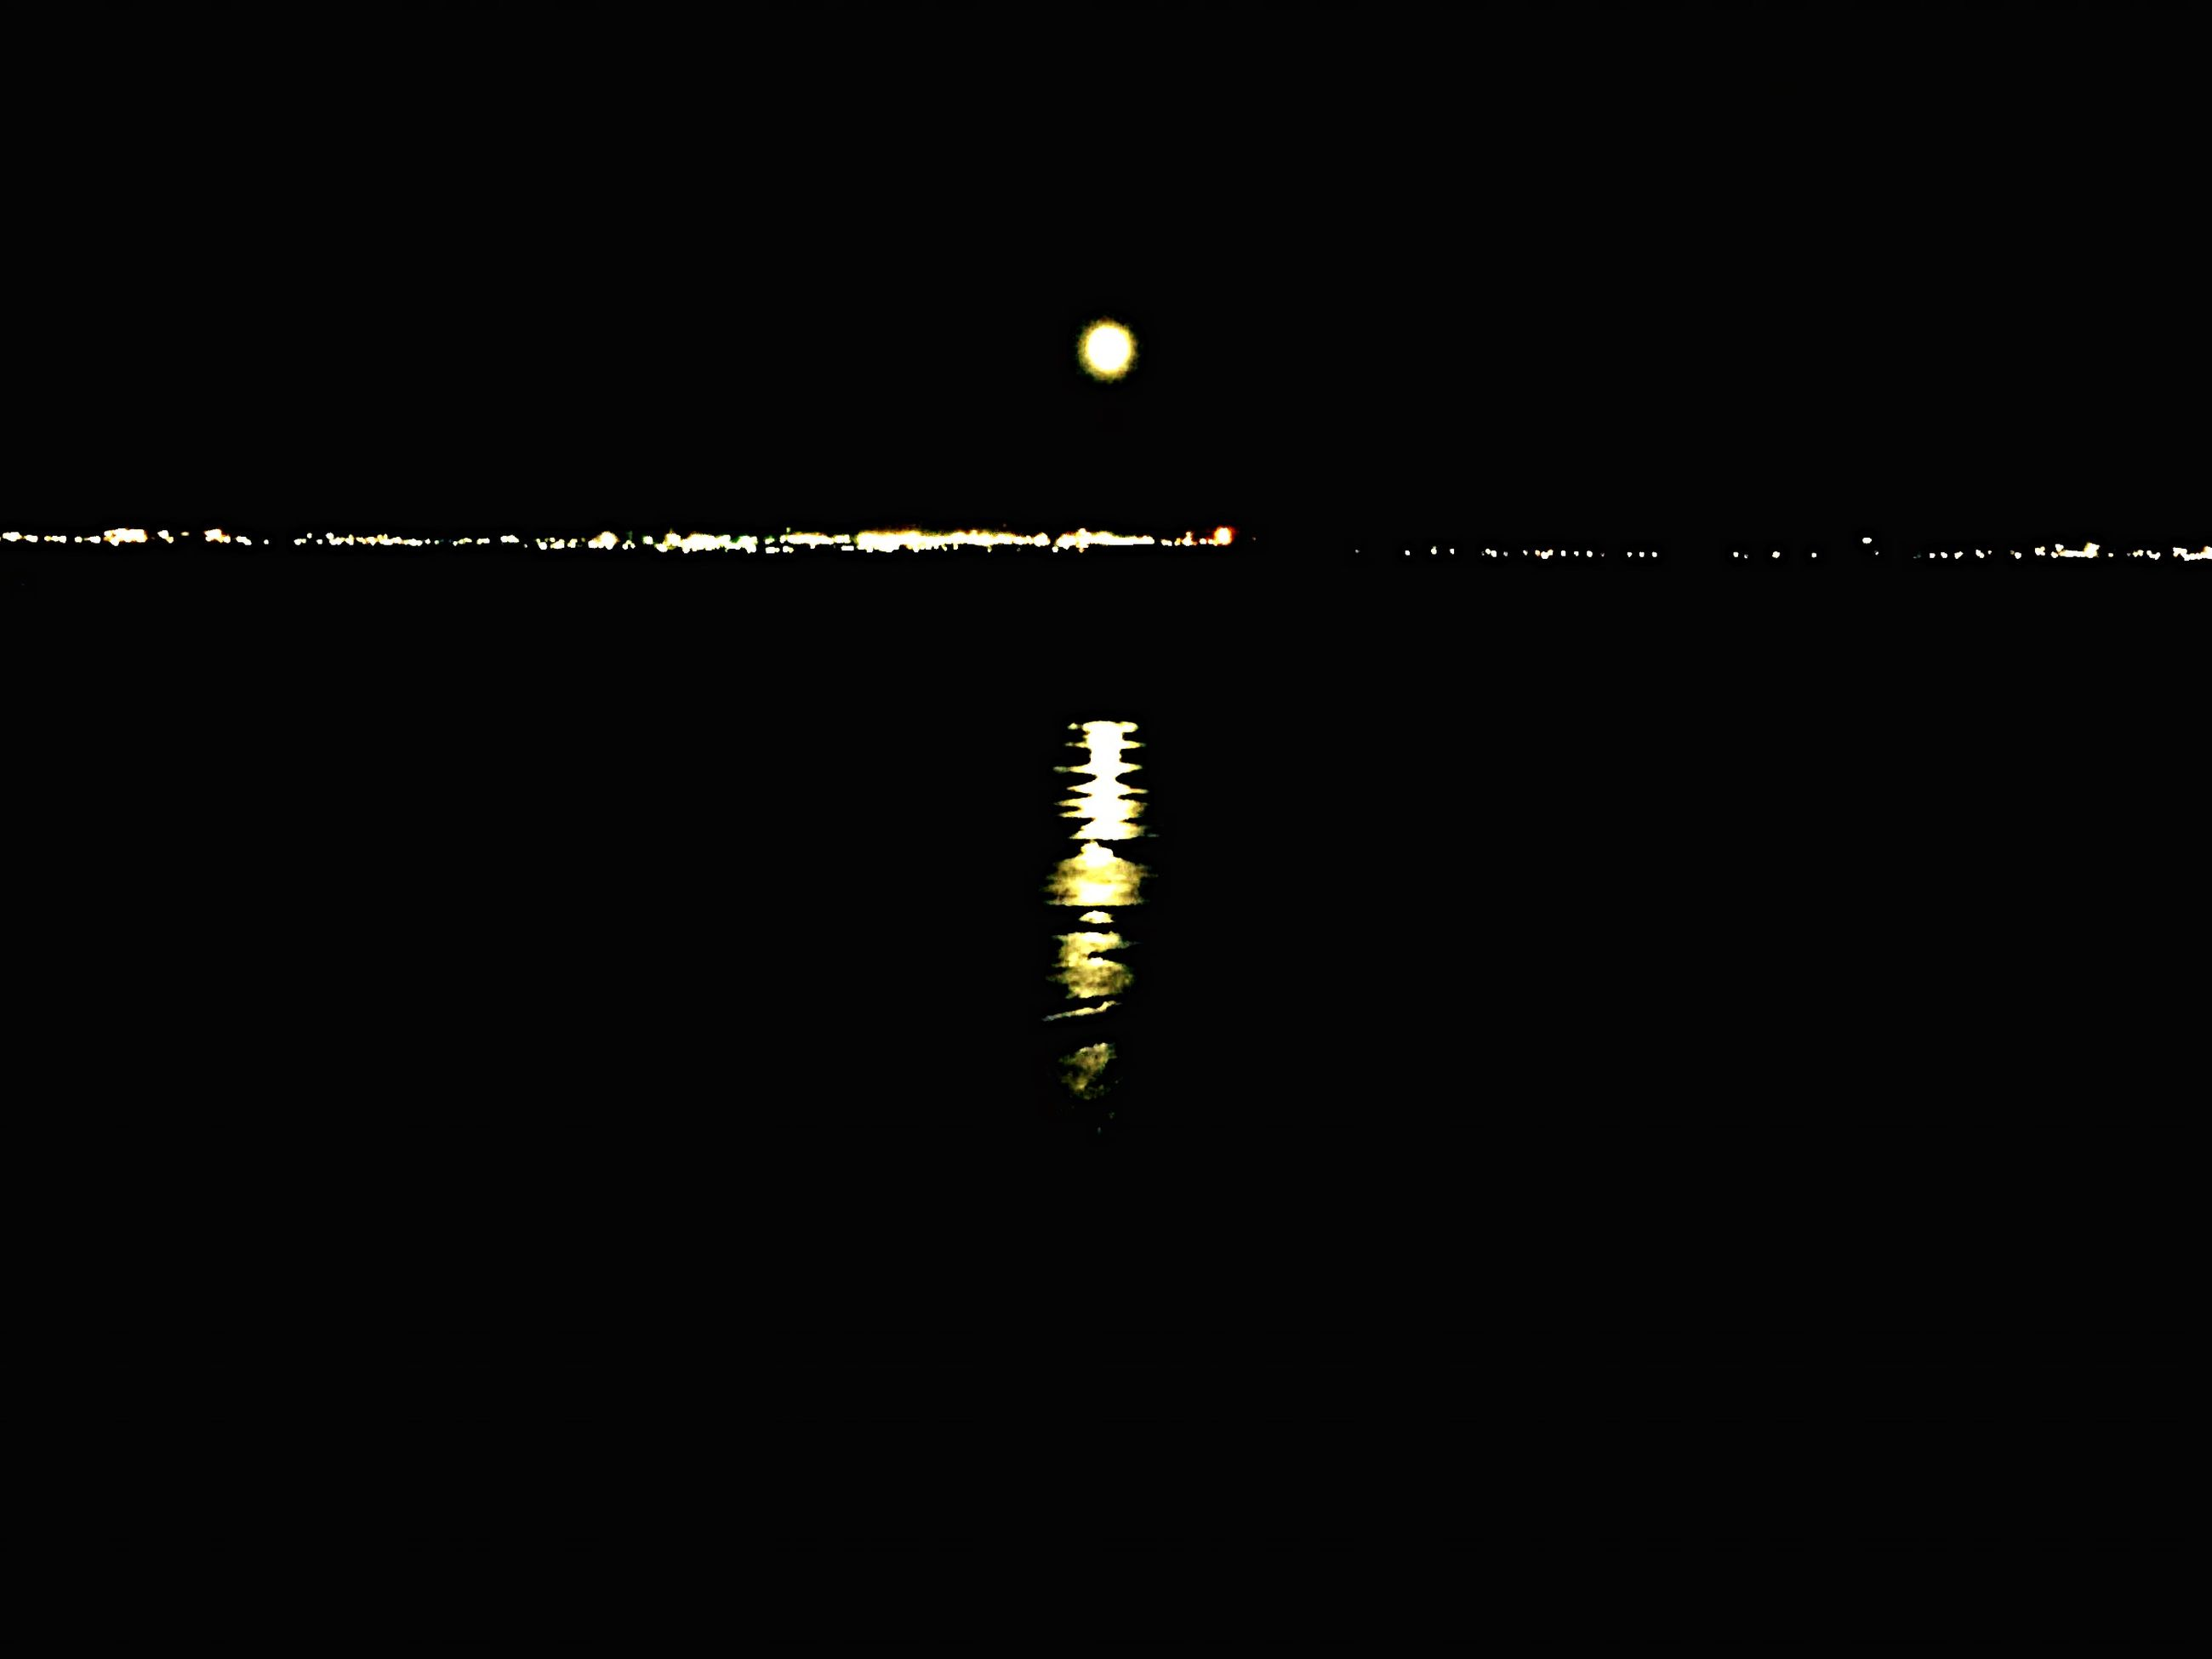 illuminated, night, dark, copy space, reflection, lighting equipment, water, light, in a row, waterfront, clear sky, light - natural phenomenon, glowing, no people, lit, electricity, moon, silhouette, outdoors, sky